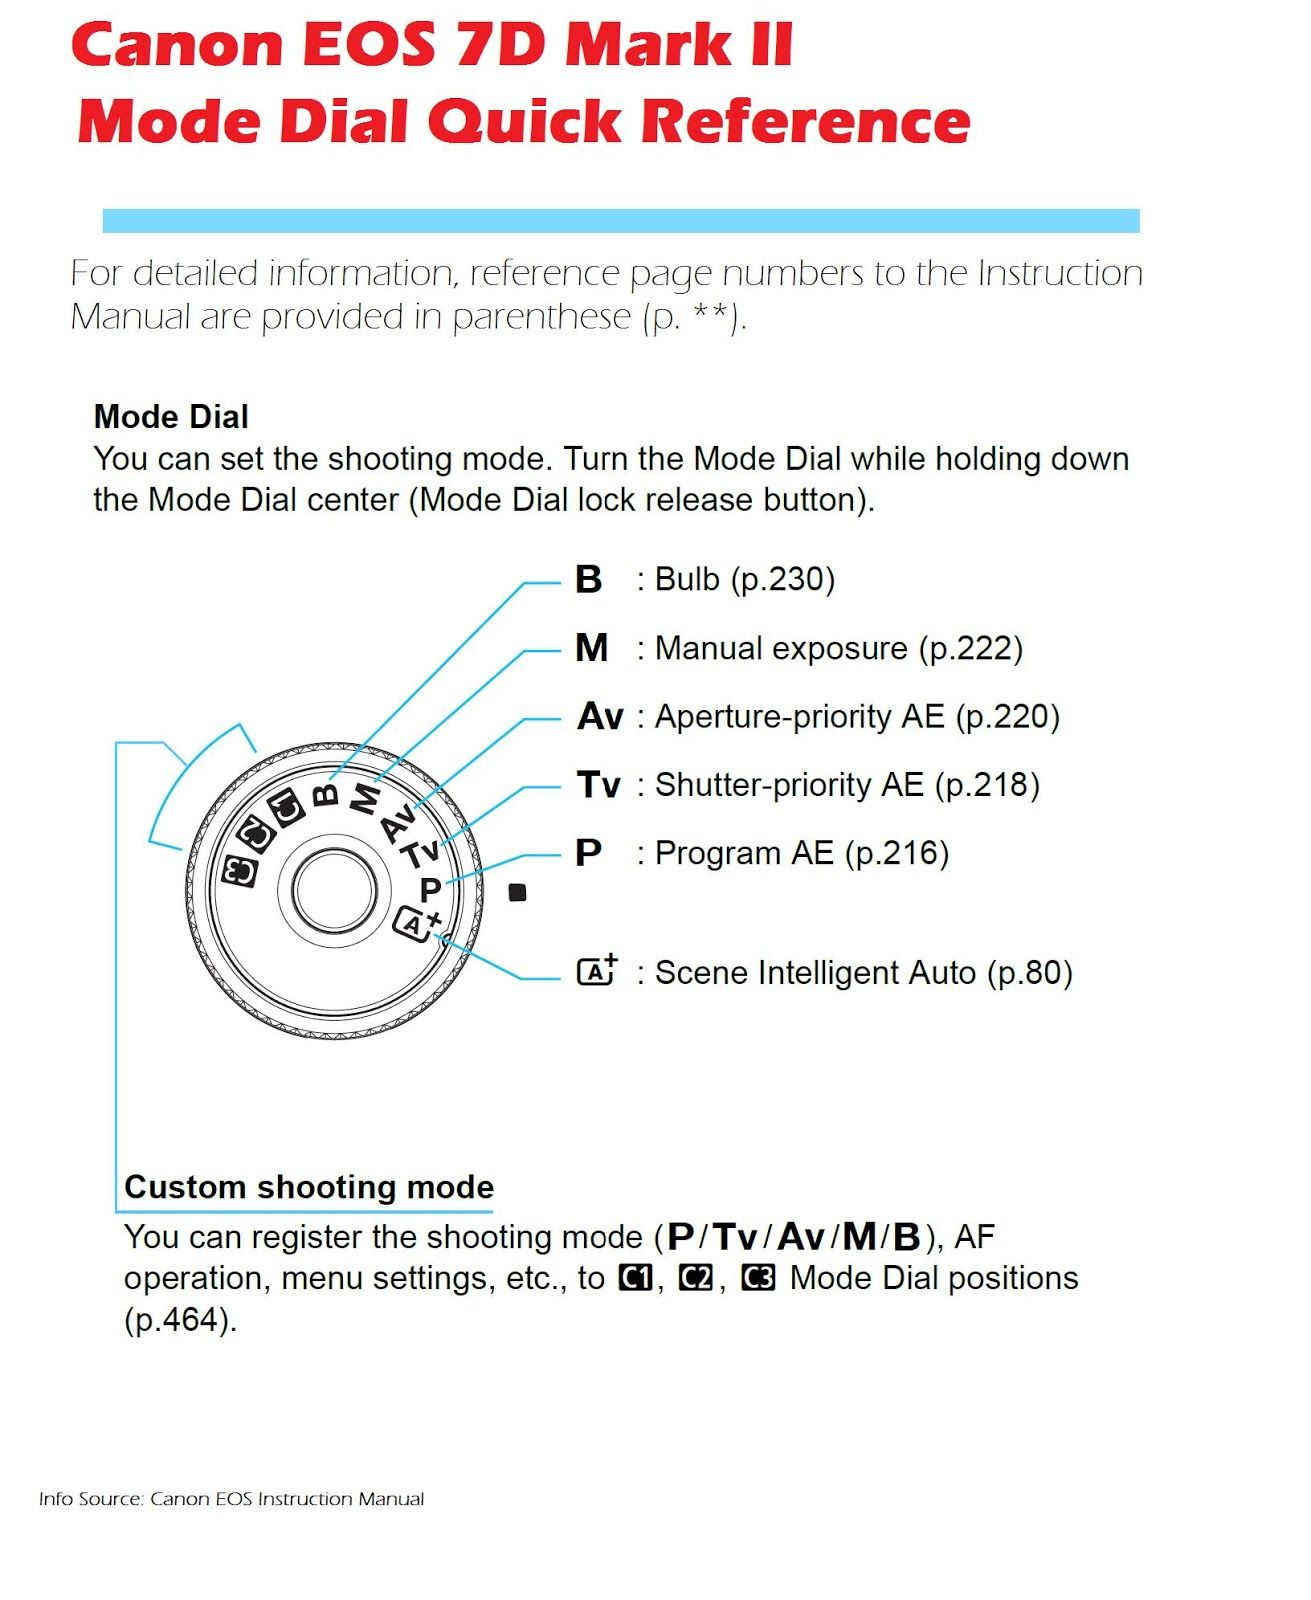 Canon EOS 7D Mark II Camera Mode Dial Quick Reference  There's more